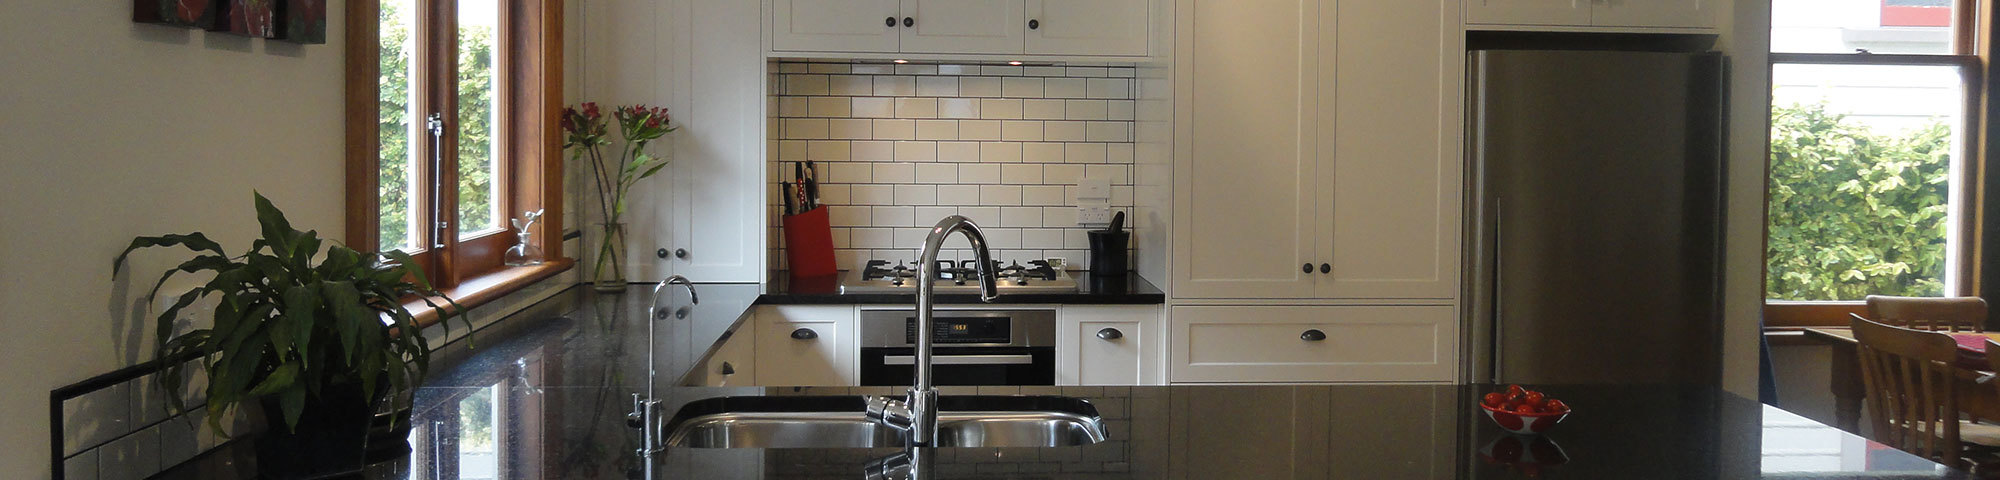 Give your kitchen a new lease of life with a custom kitchen design